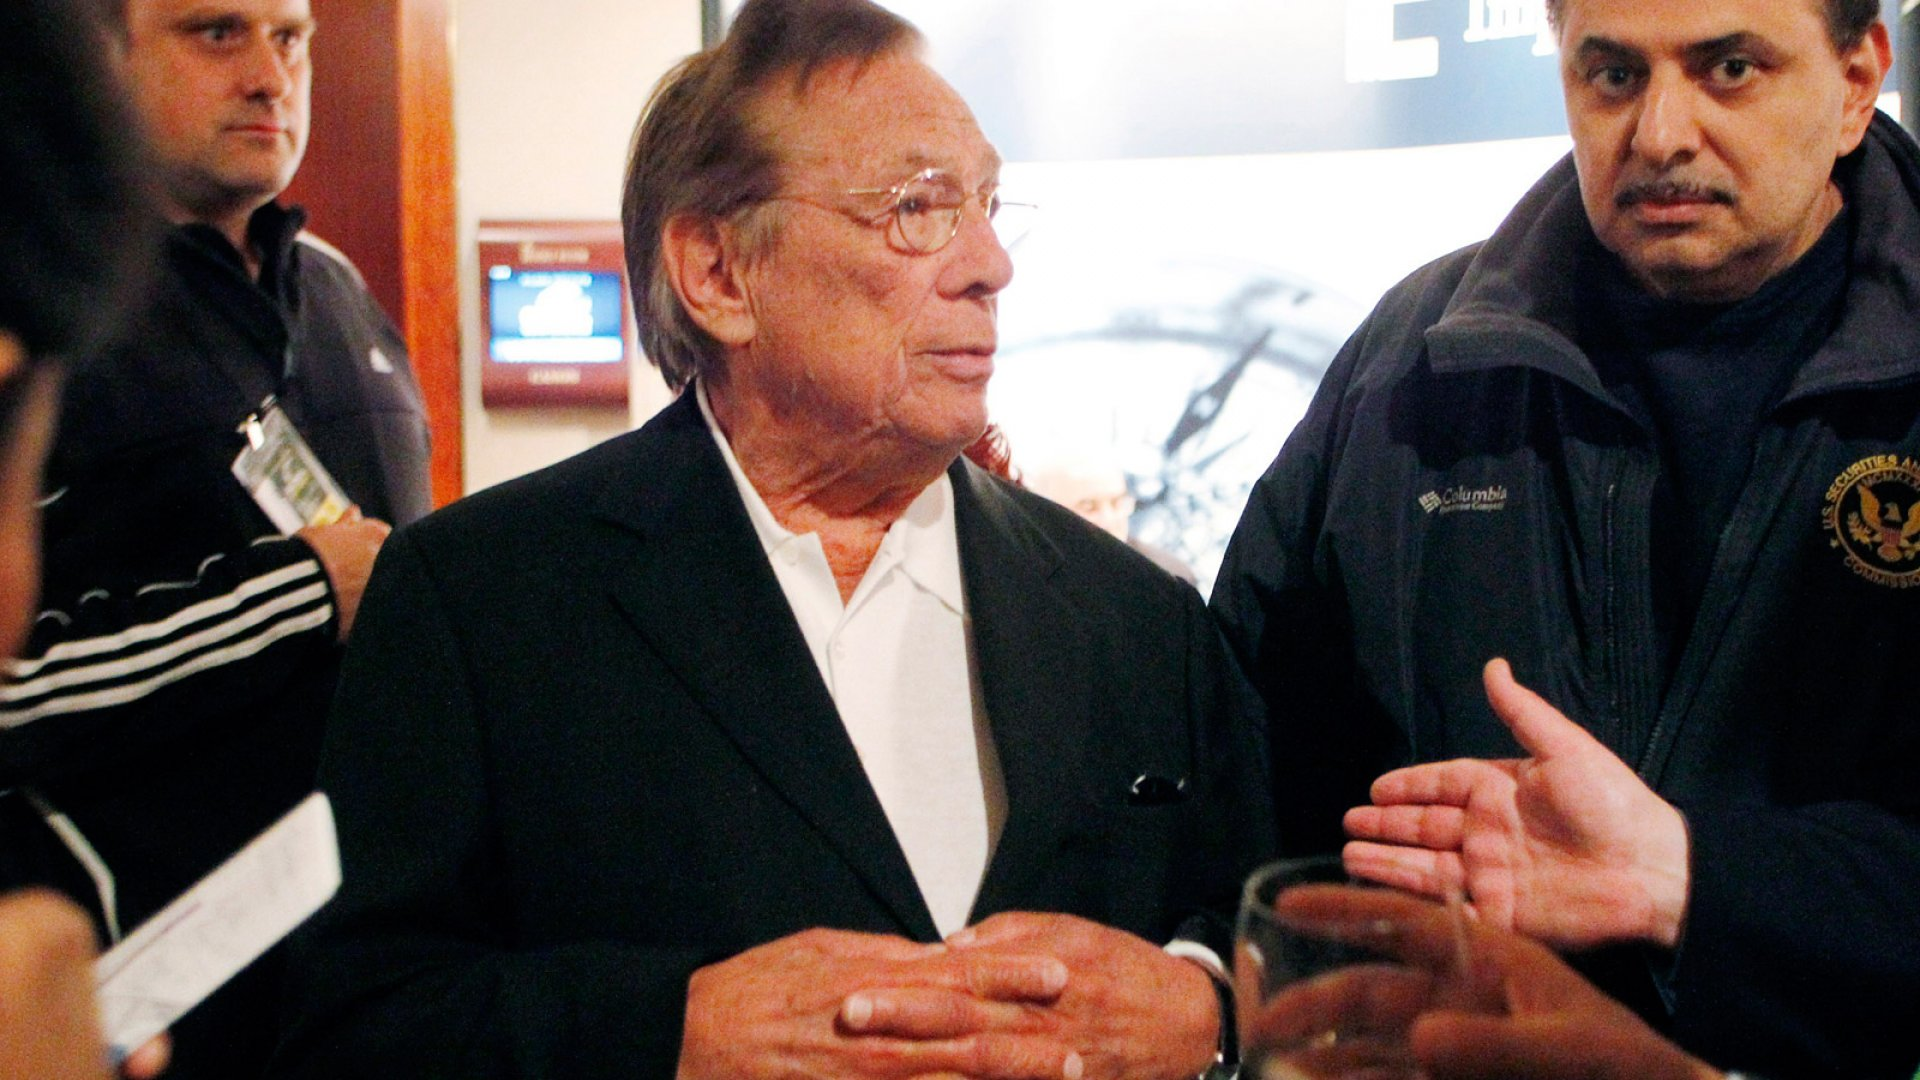 3 Things You Can Learn from the Donald Sterling Fiasco